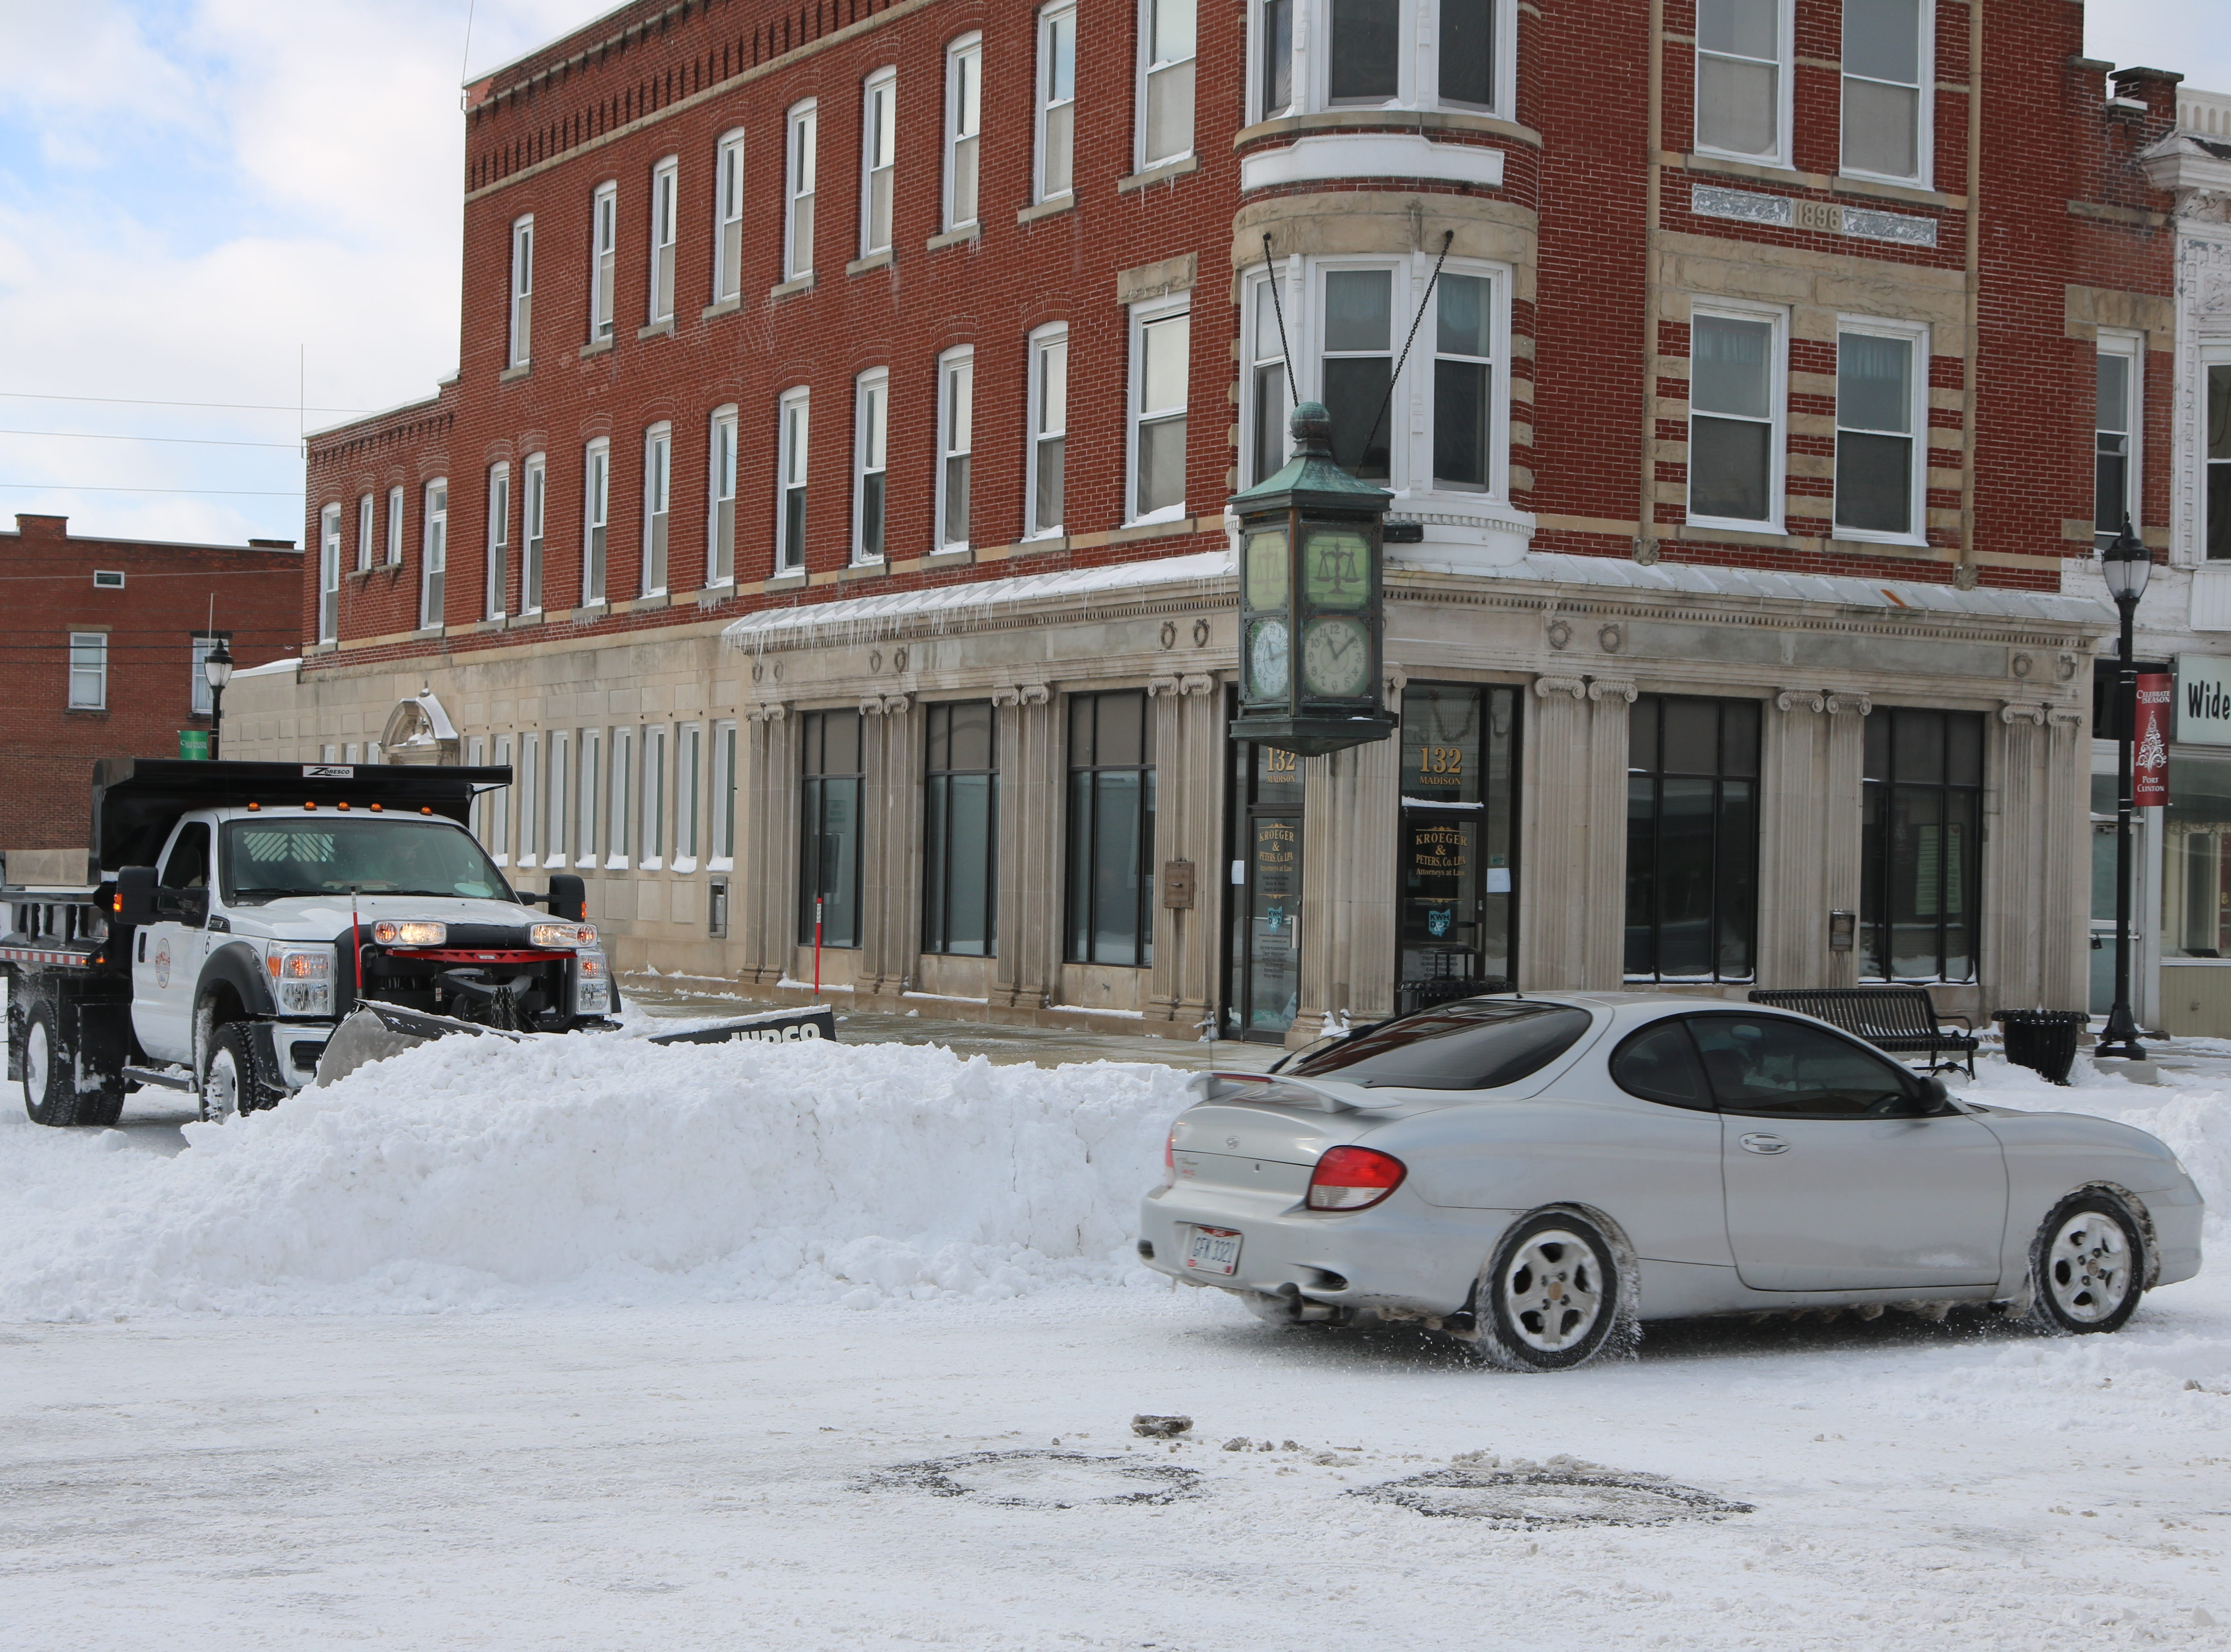 There was still plenty of snow on the roads Sunday, such as here in downtown Port Clinton, as crews continued to plow throughout the weekend.